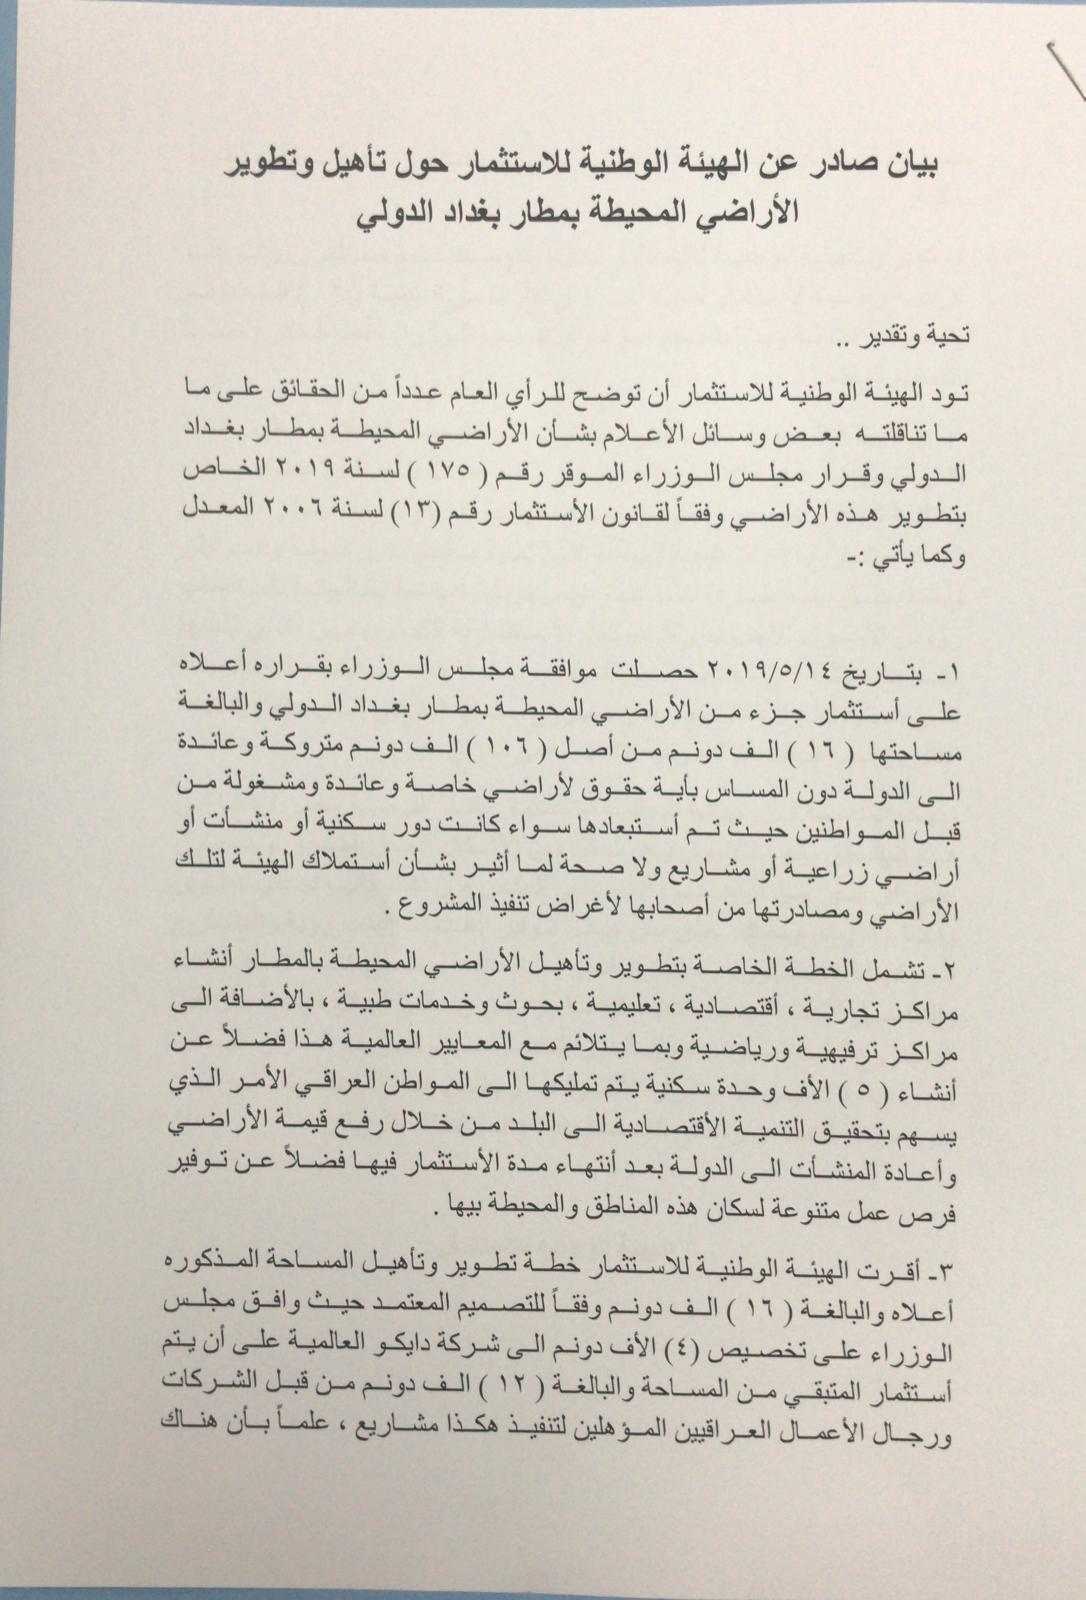 The Investment Authority issues a statement on the rehabilitation of the land surrounding the Baghdad airport ExtImage-9307131-281517376